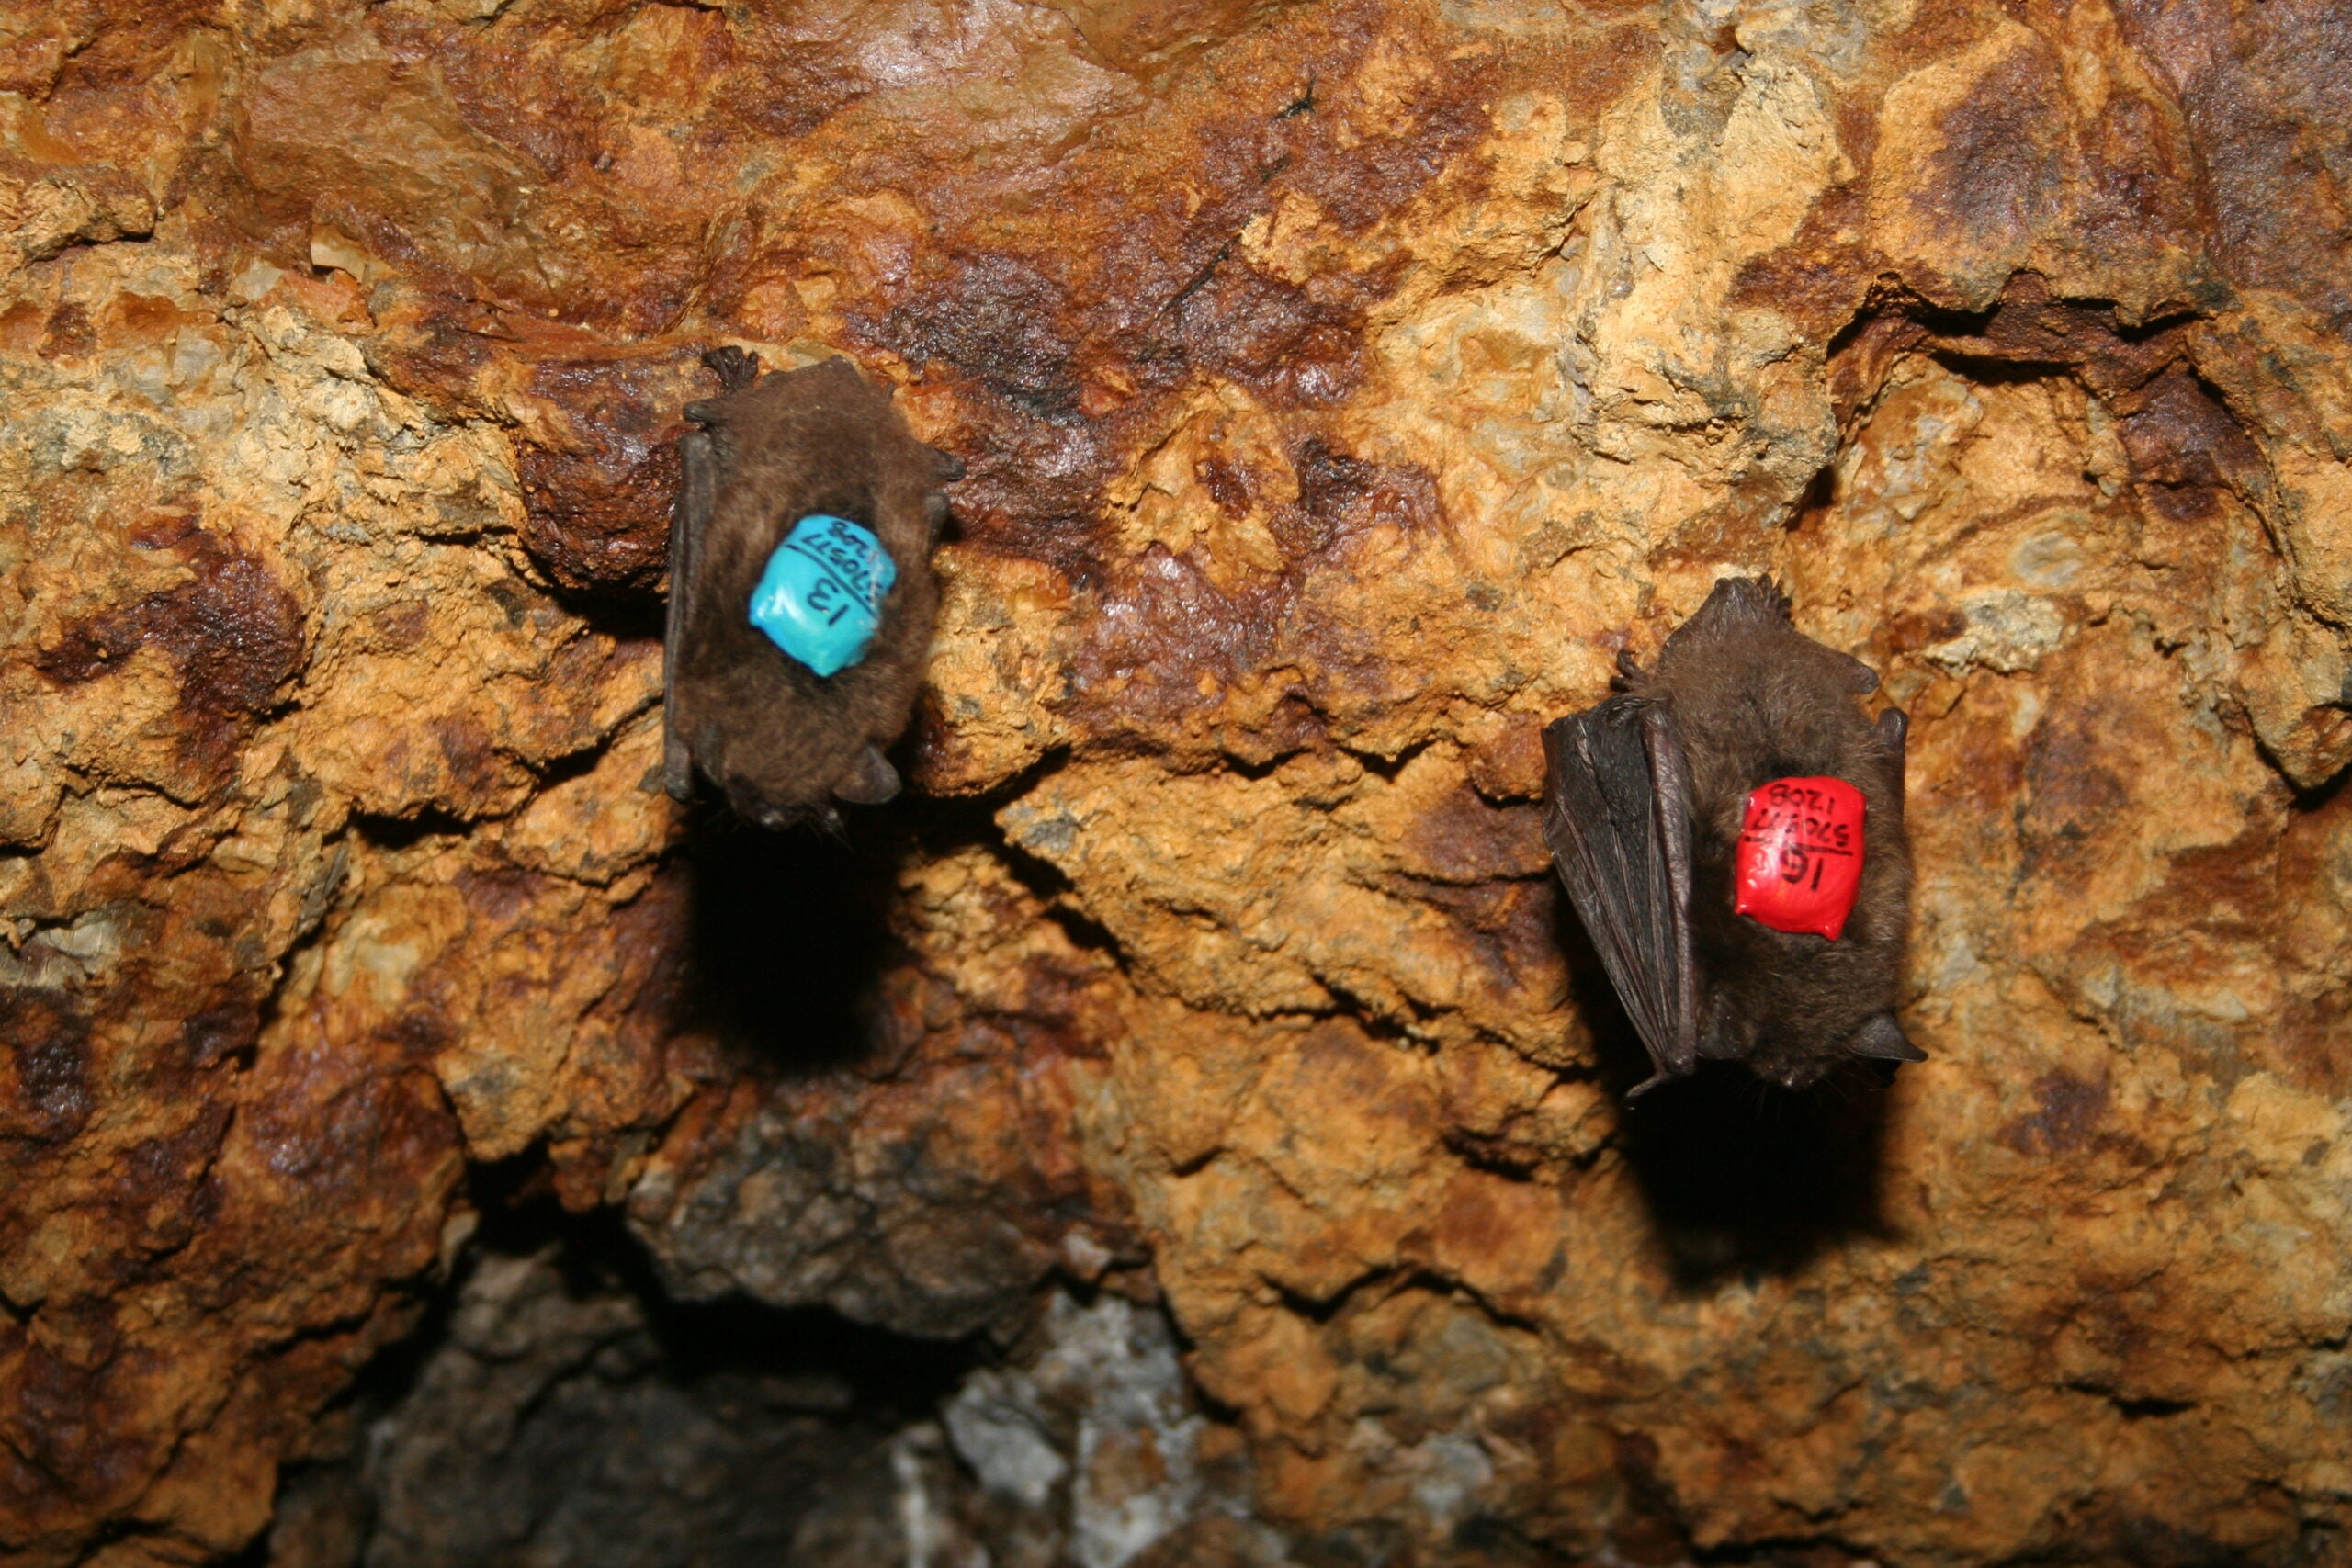 Can Technology Help Biologists Save Bats from Extinction?